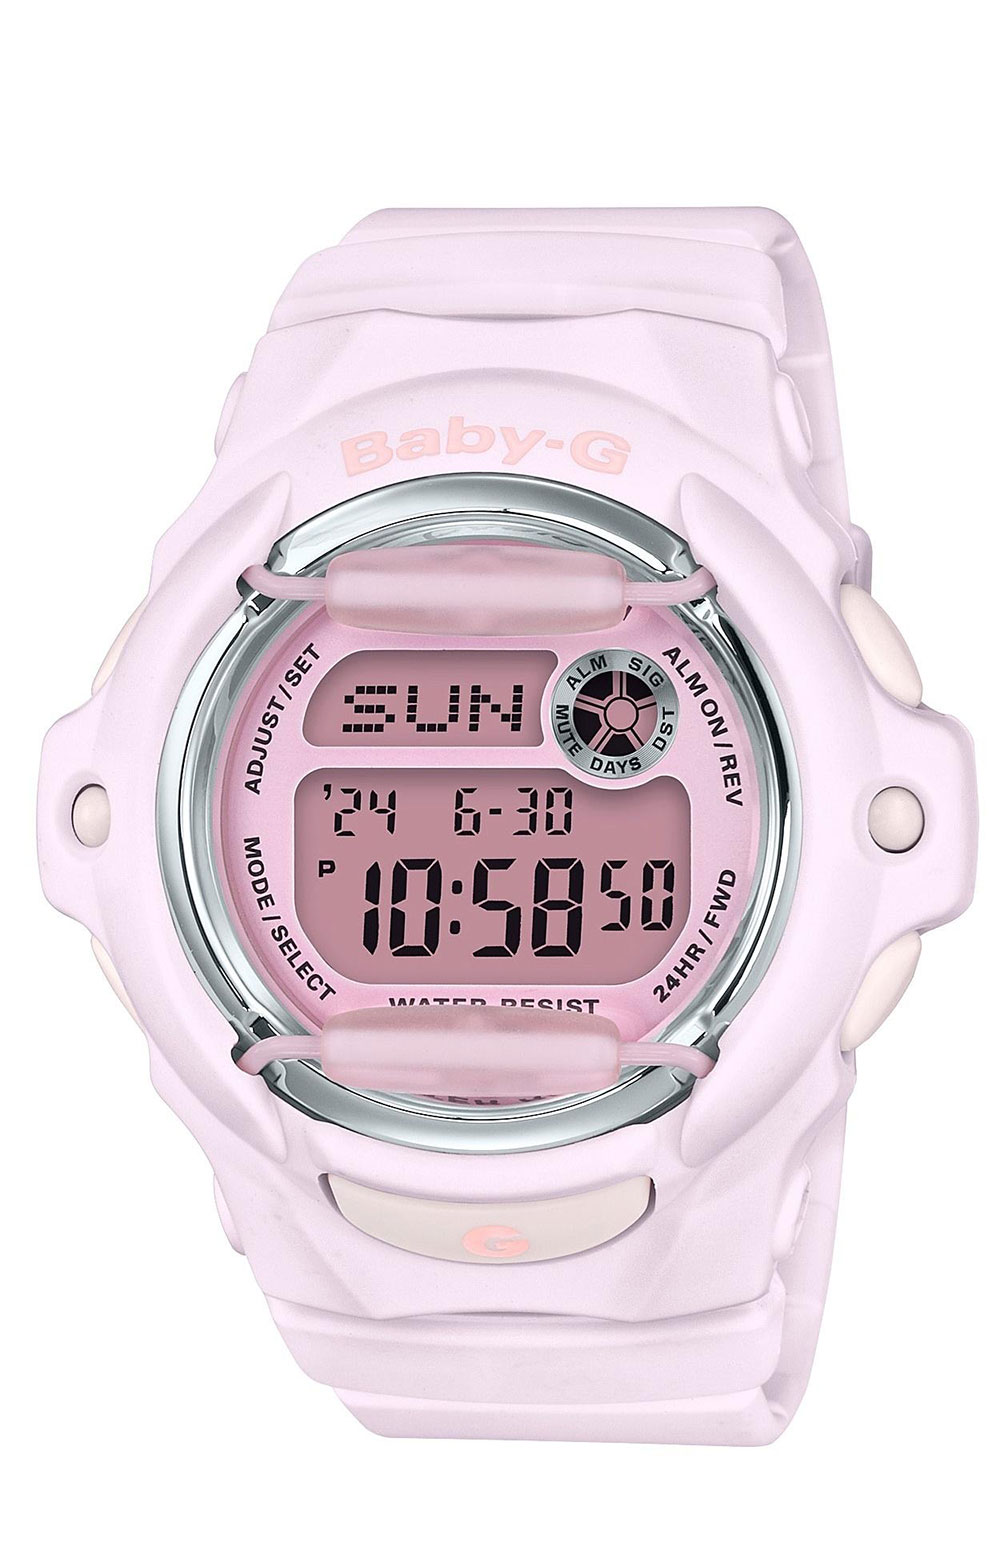 Baby-G BG169M-4 Watch - Pink